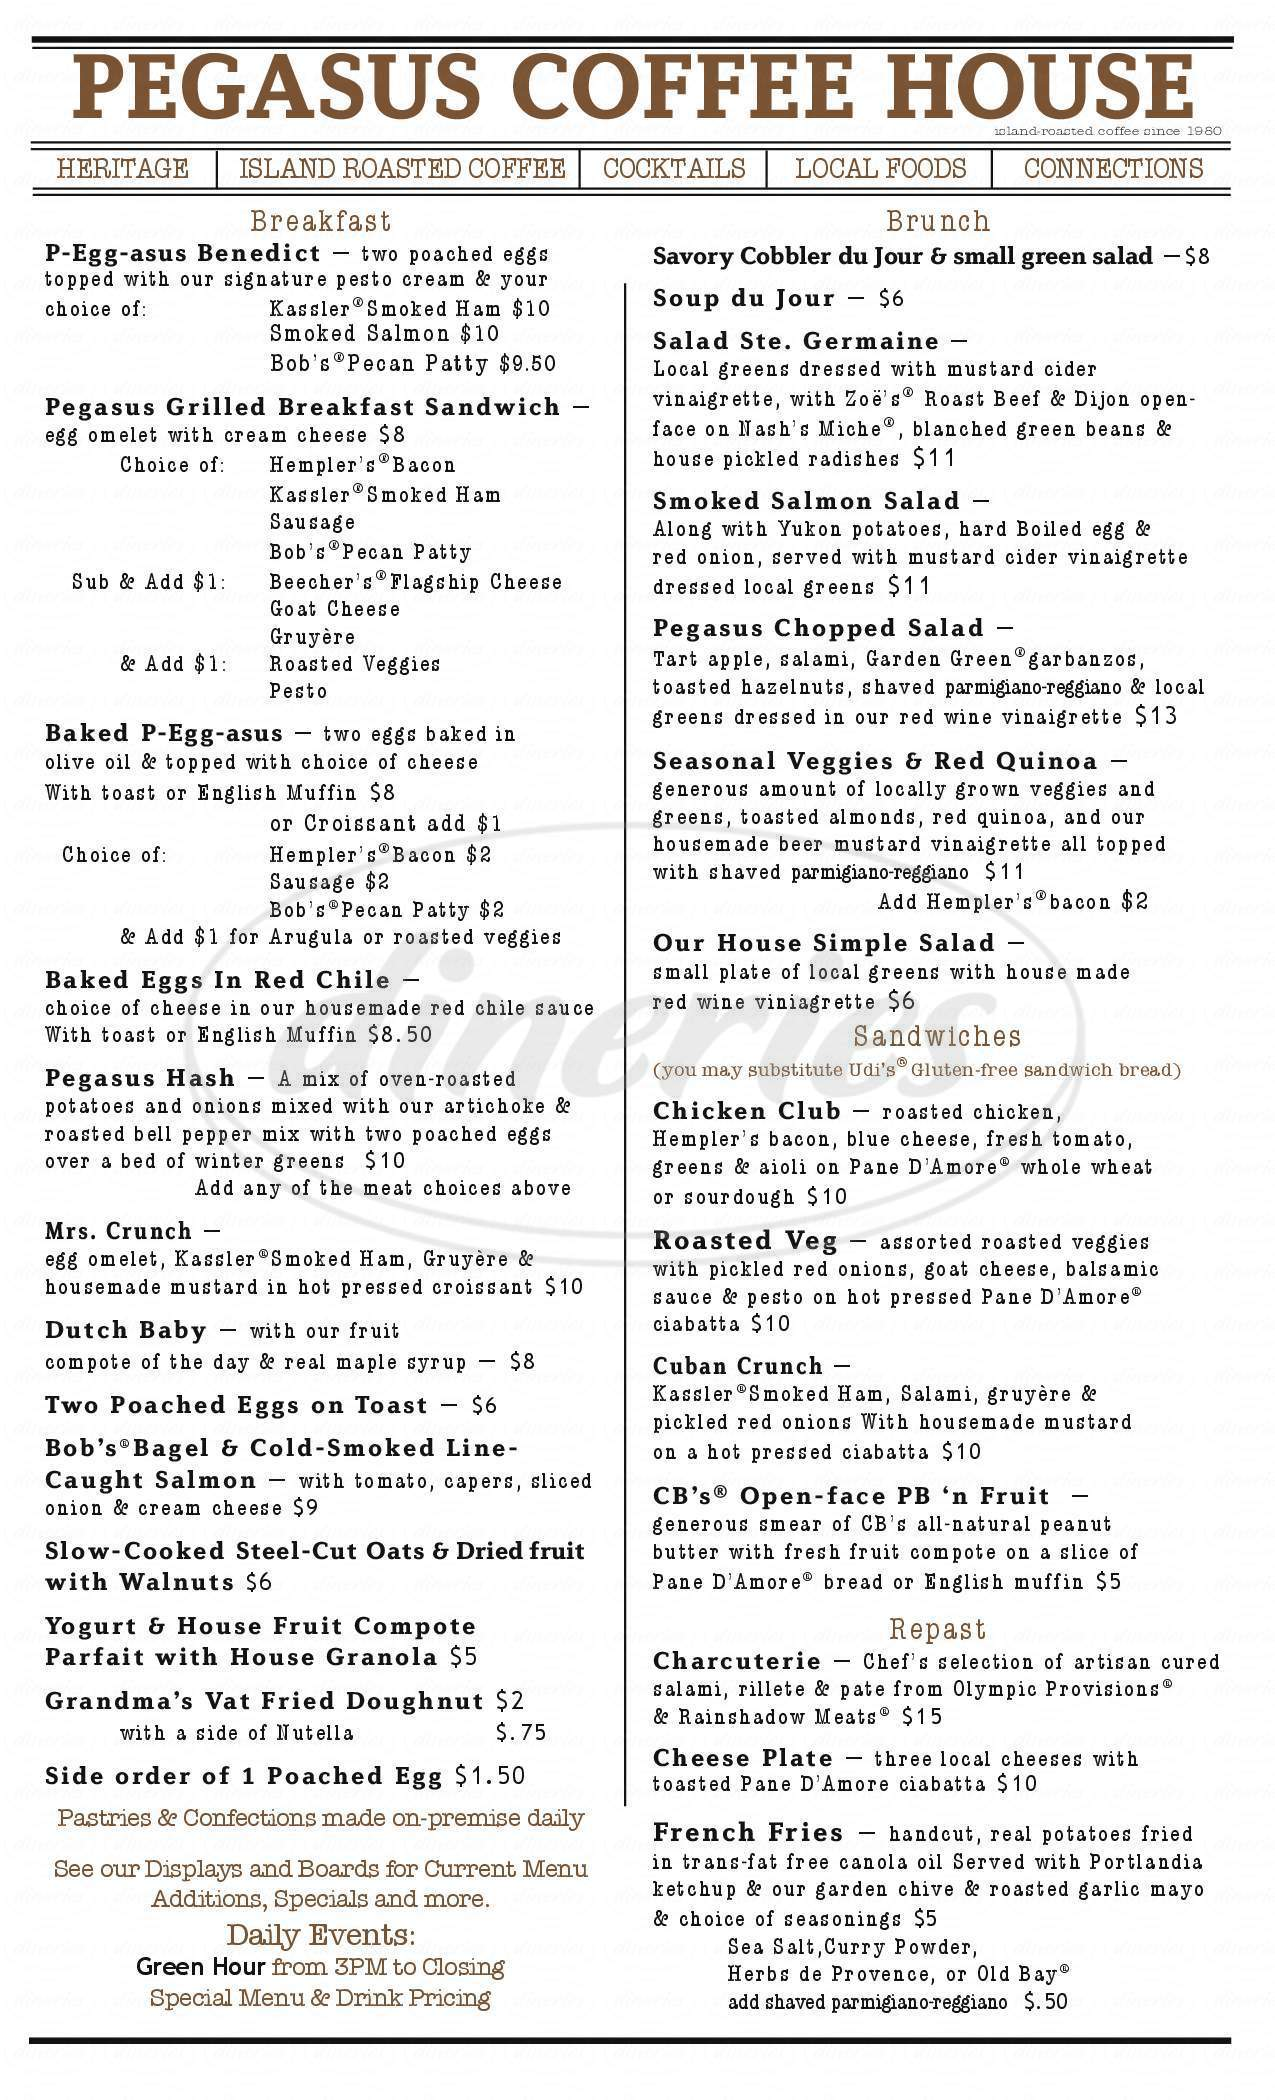 menu for Pegasus Coffee House